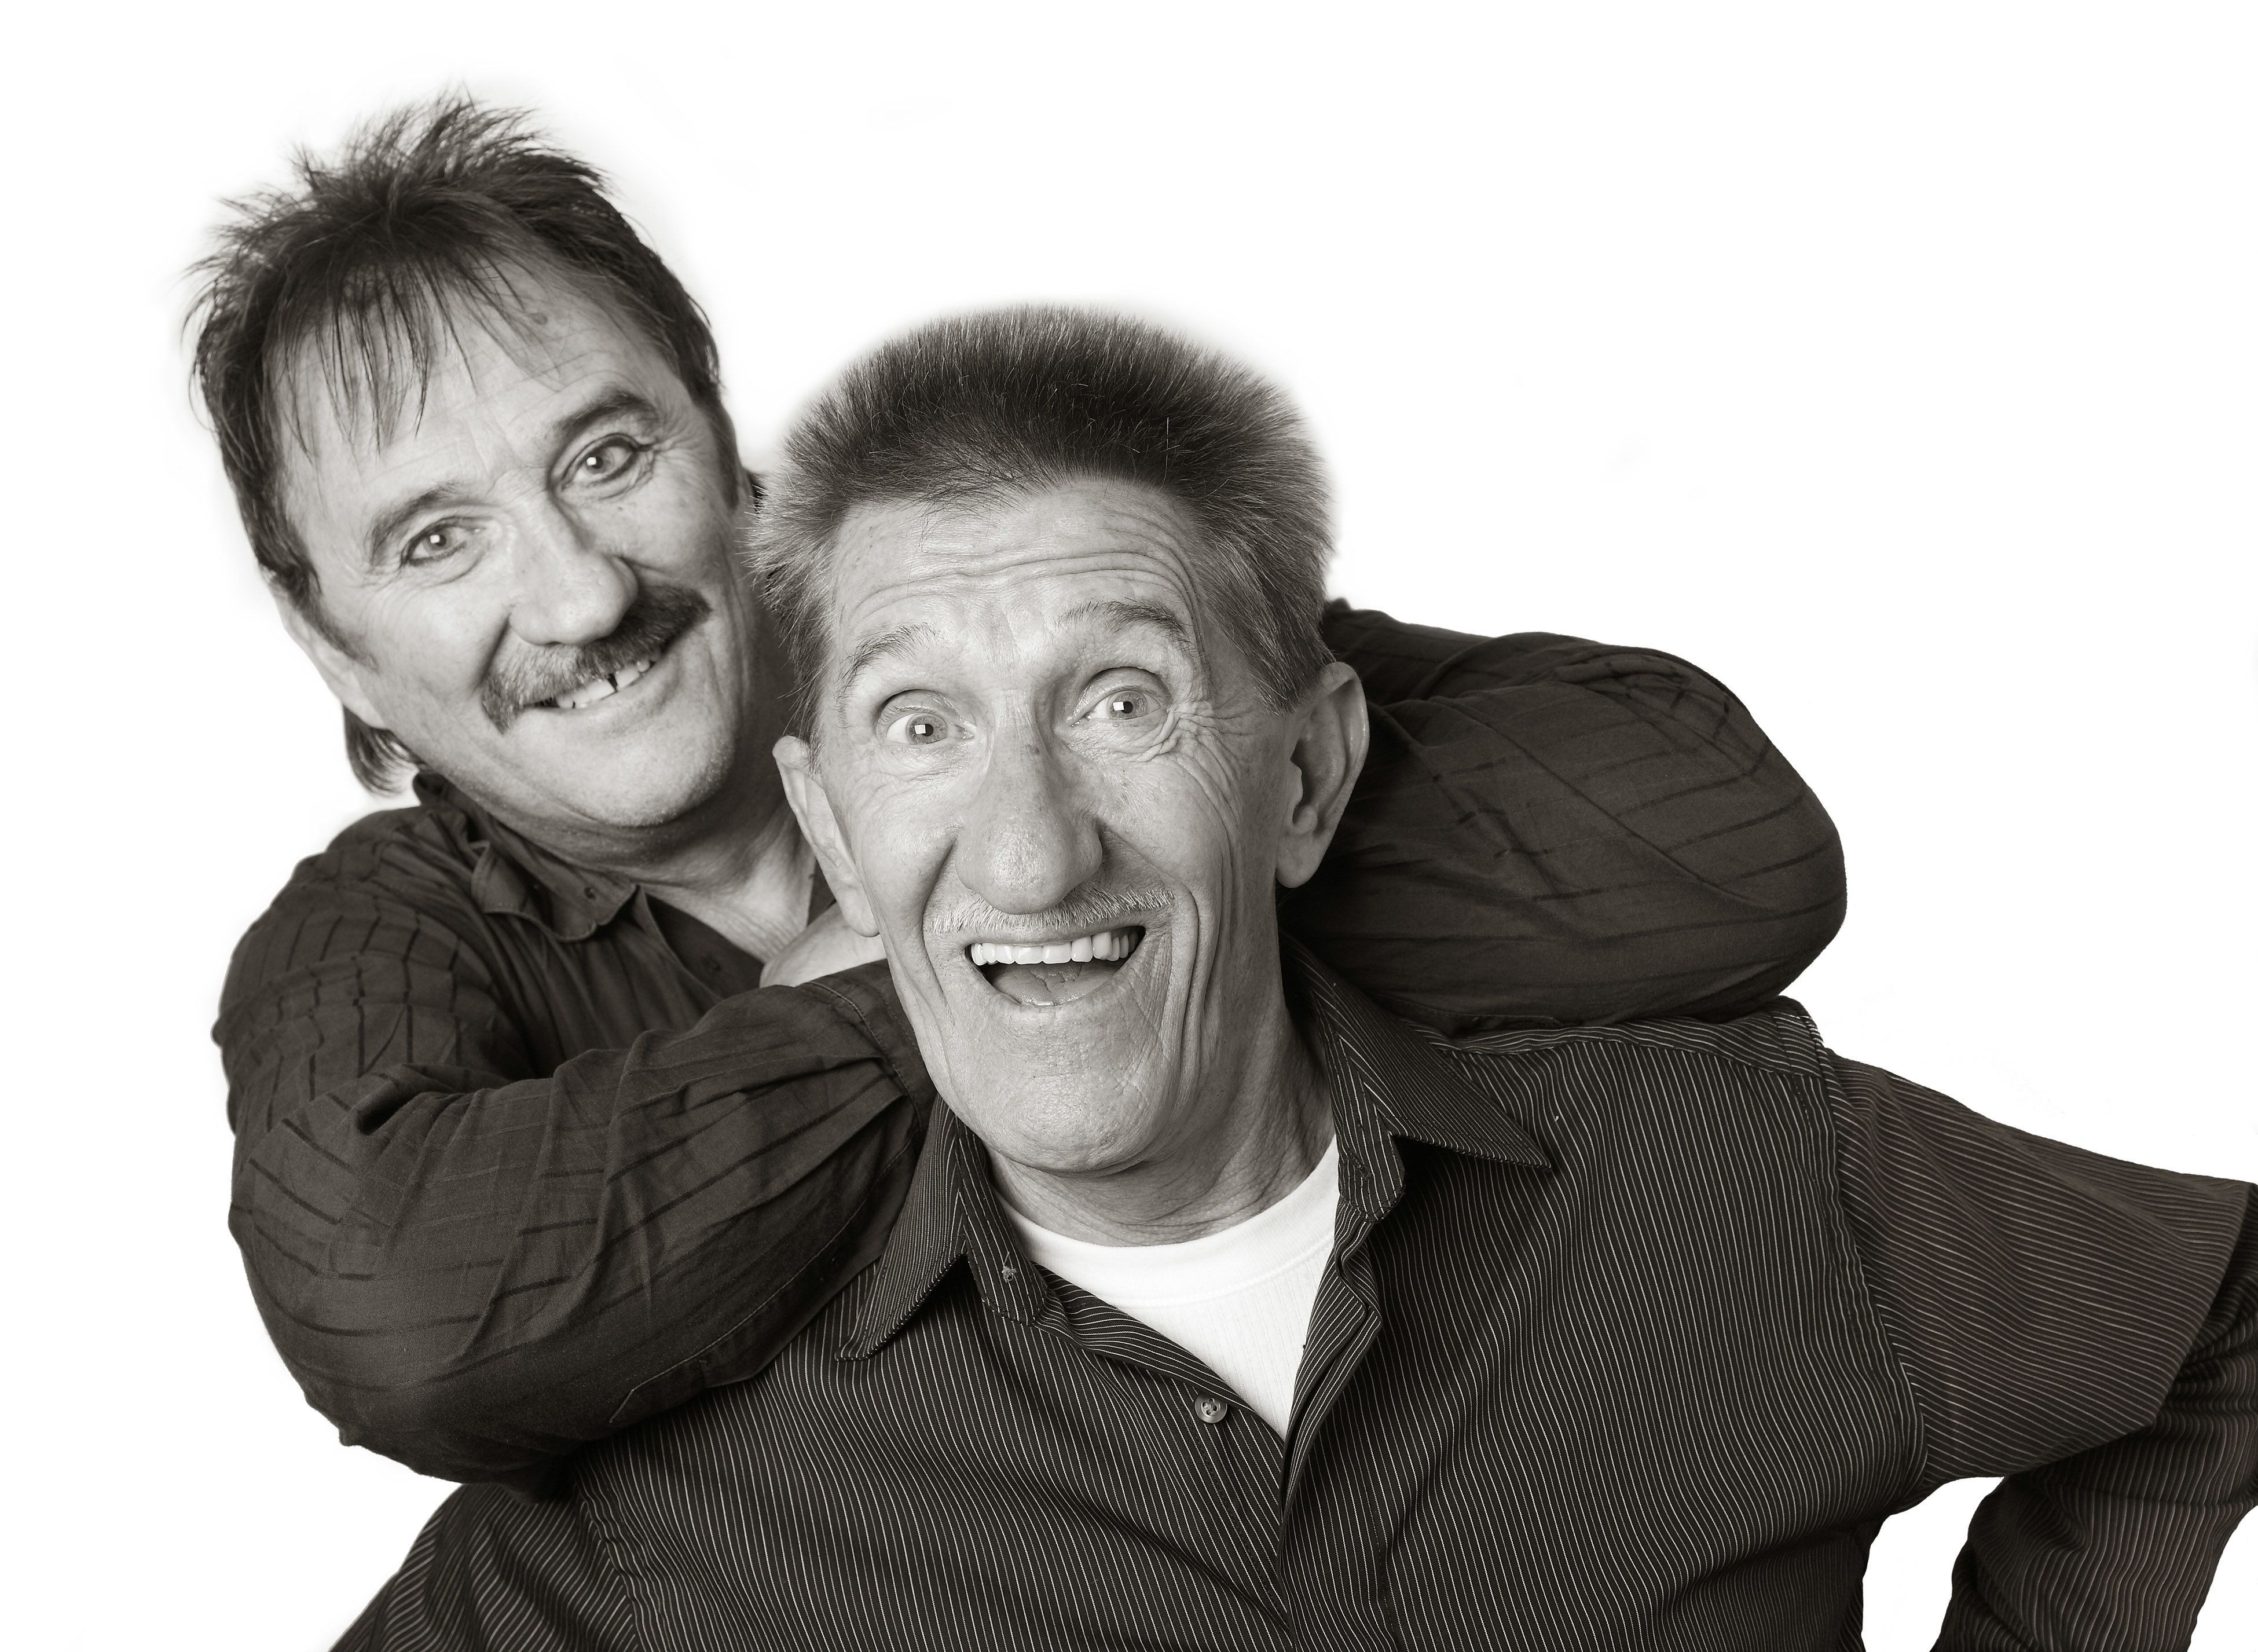 Paul Chuckle and Barry Chuckle of The Chuckle